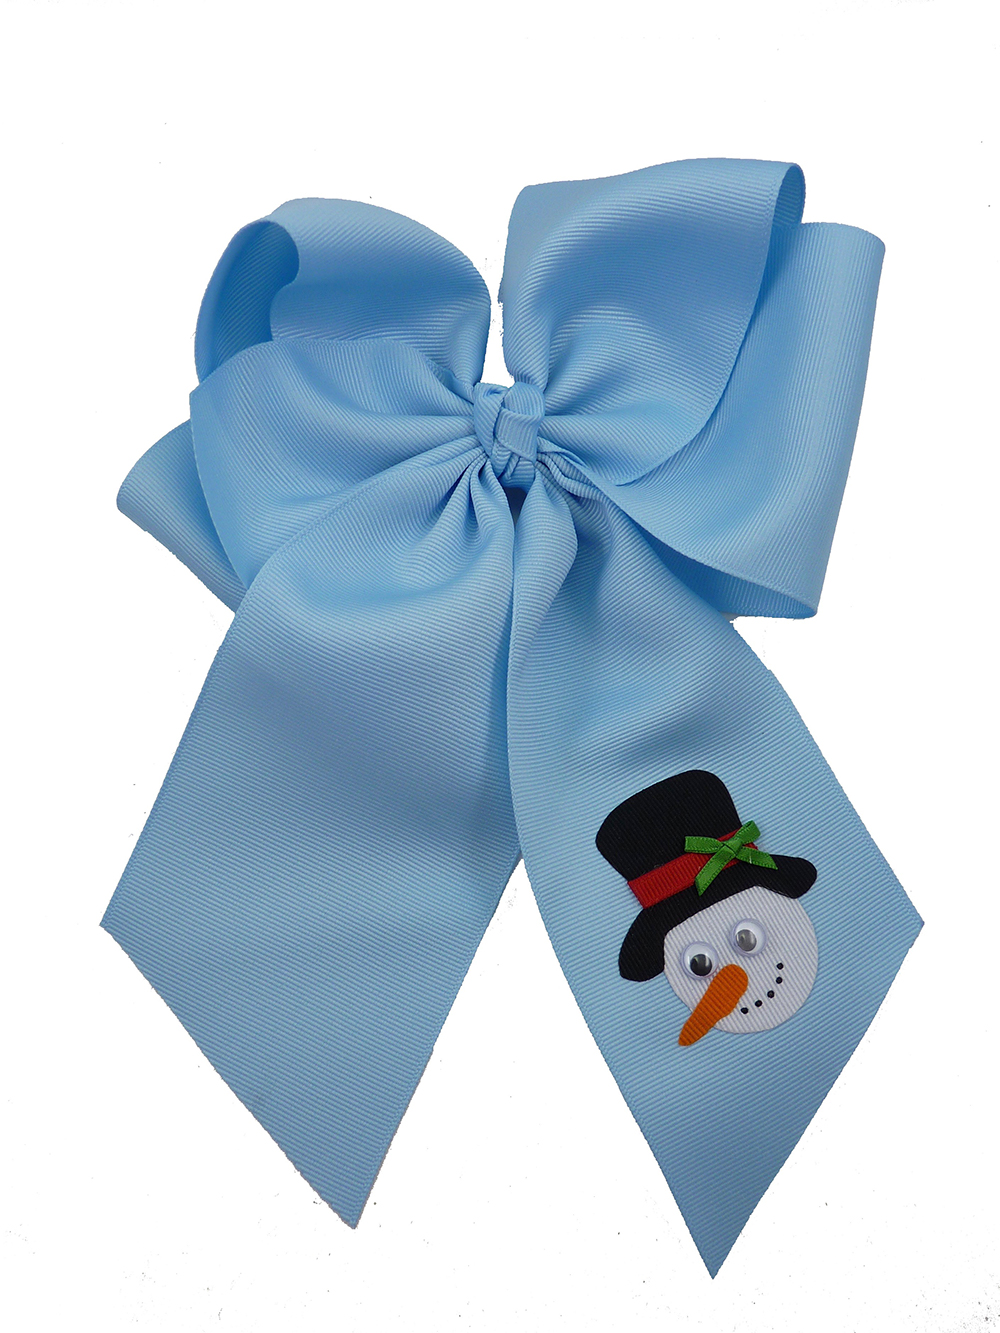 Frosty blue winter top hat hairbow hair bow snowman Christmas Xmas carrot